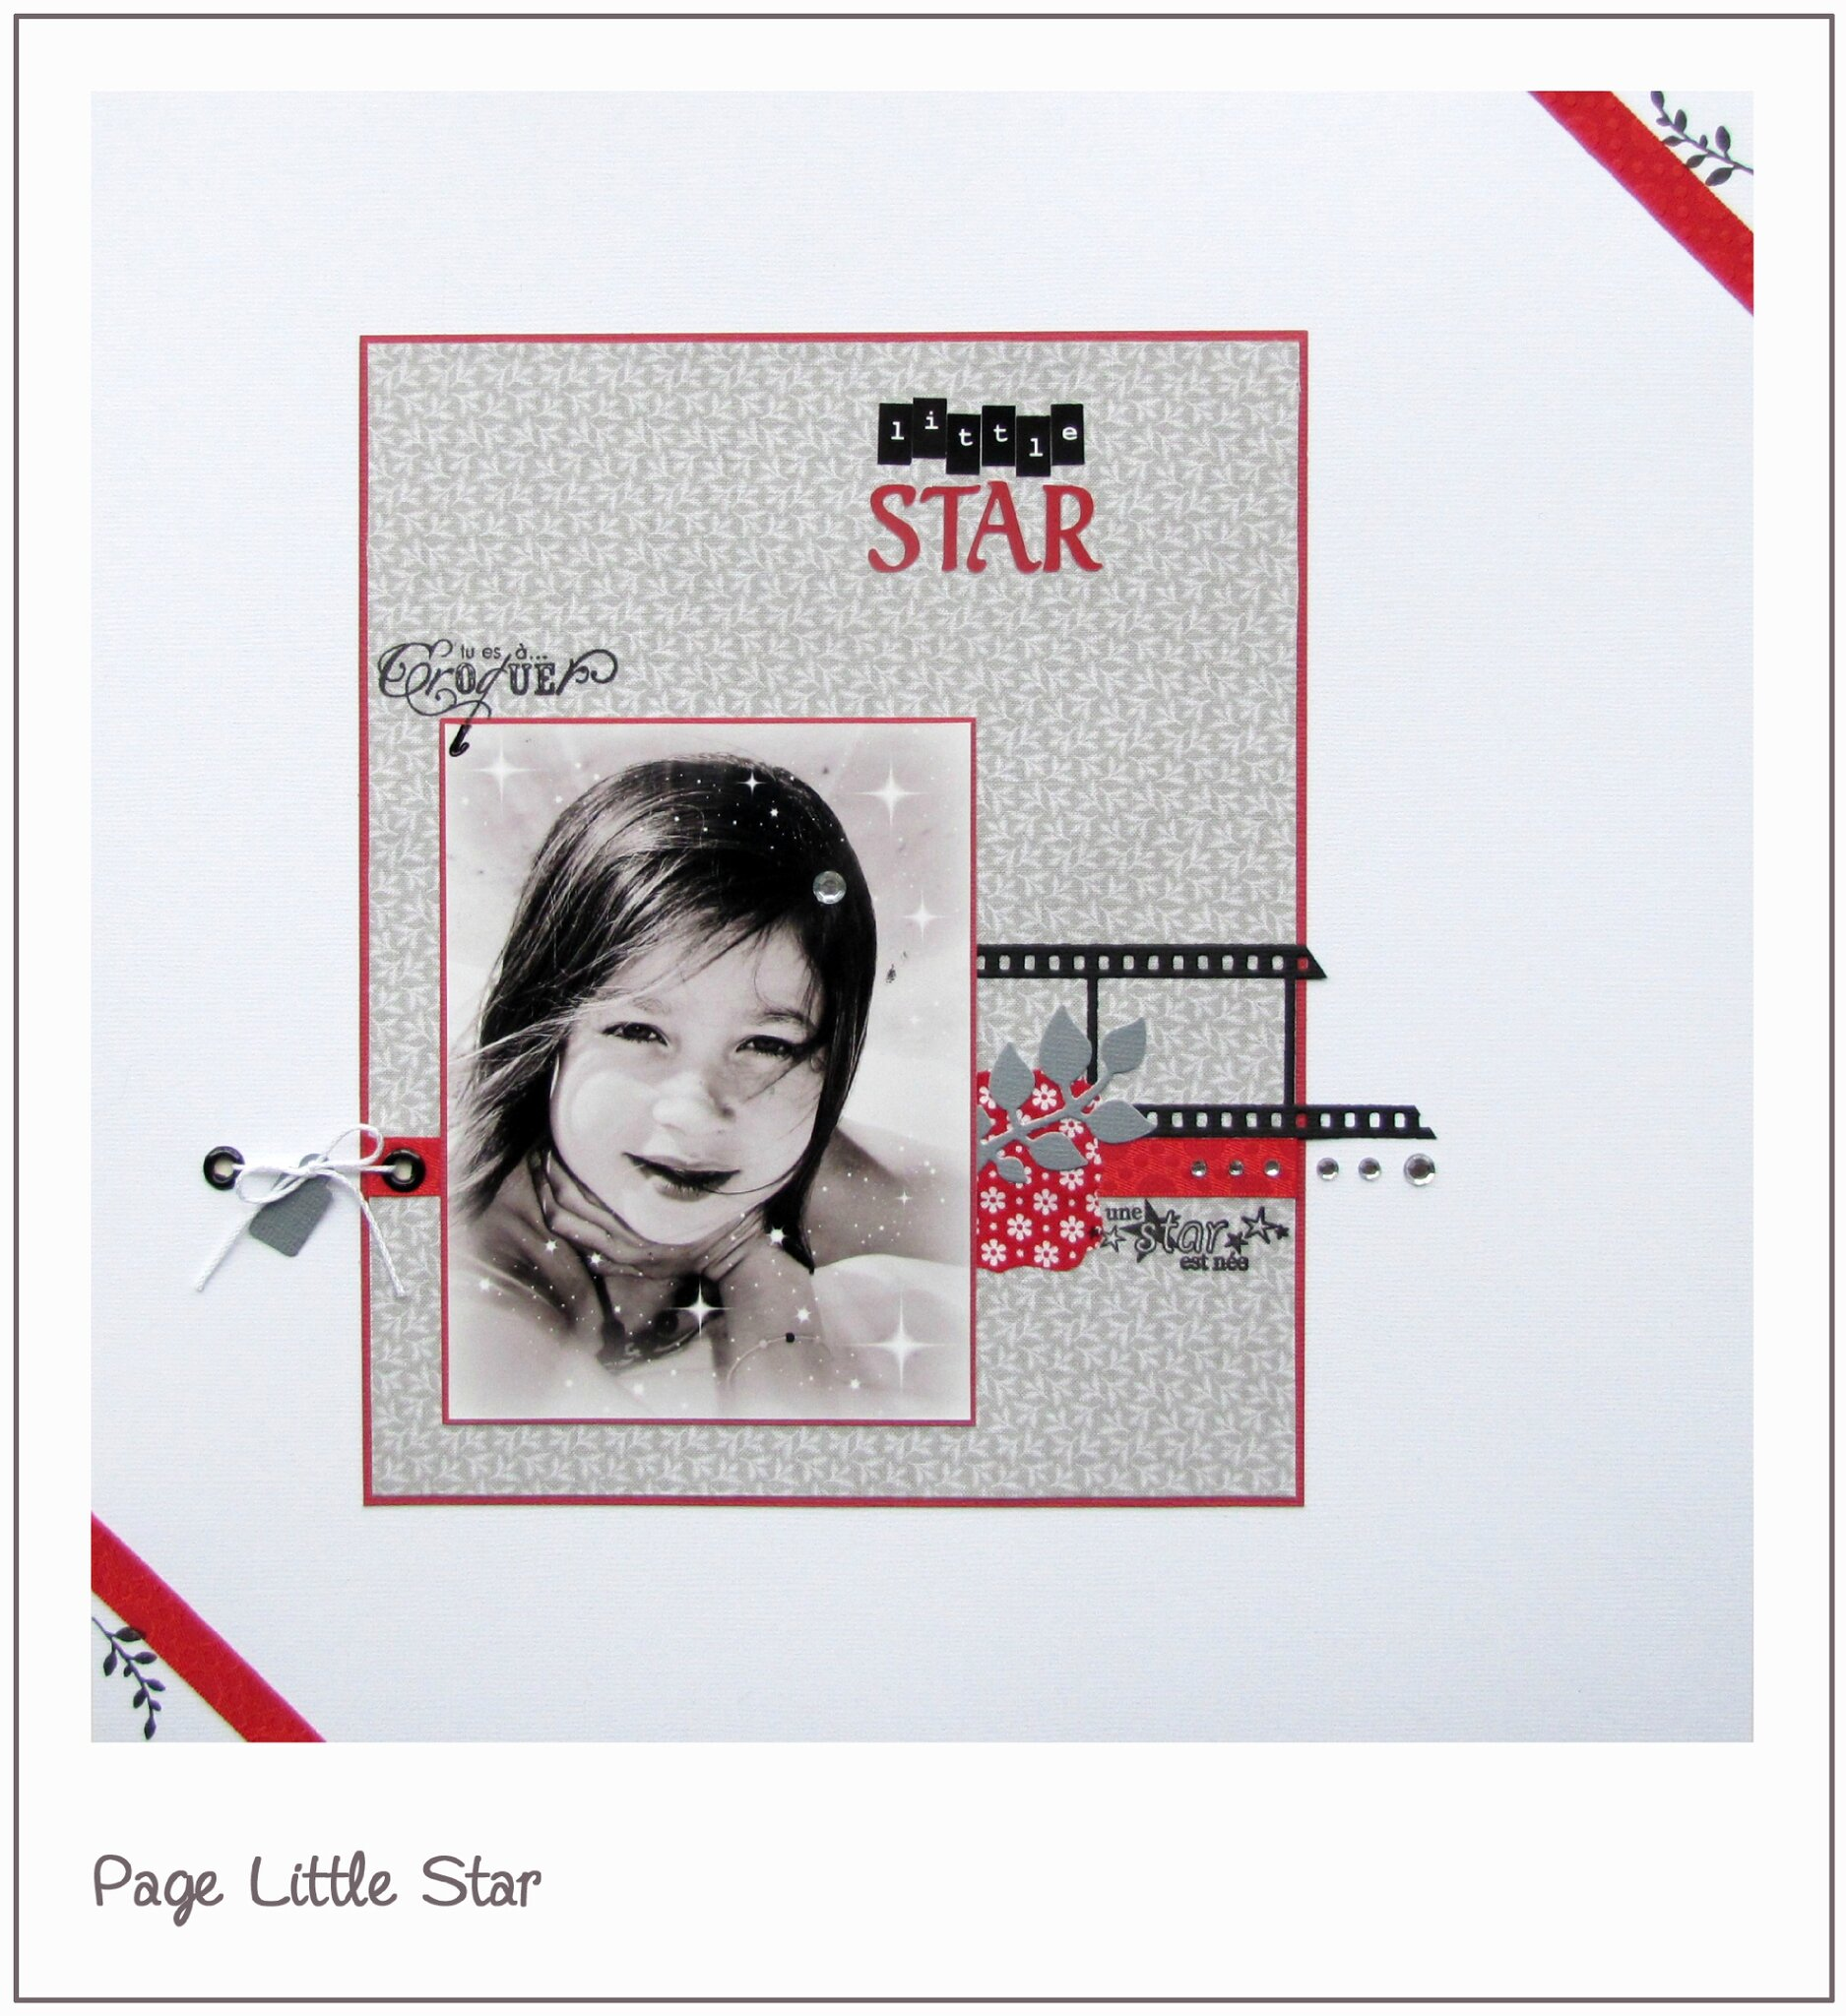 24 - 300413 - Little Star